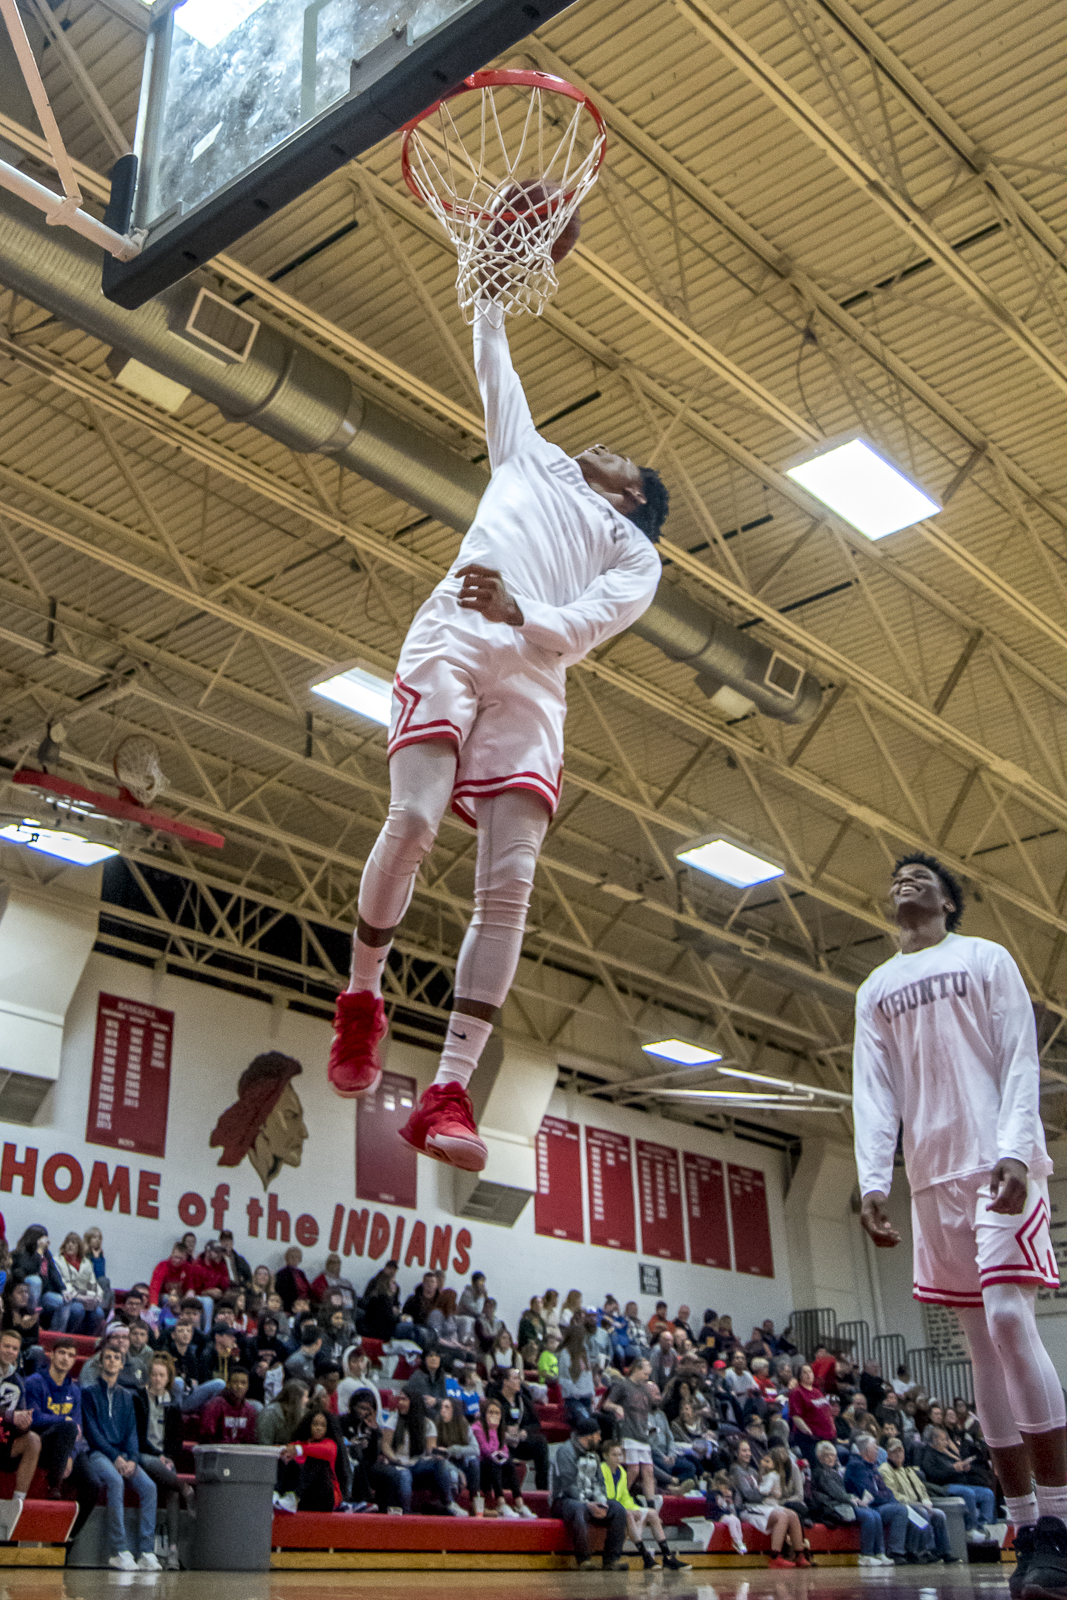 During halftime of the girls game, the boys team came out and put on a real show. All of the fancy dunking they could do amazes me. This show, in itself is worth the admission fee!